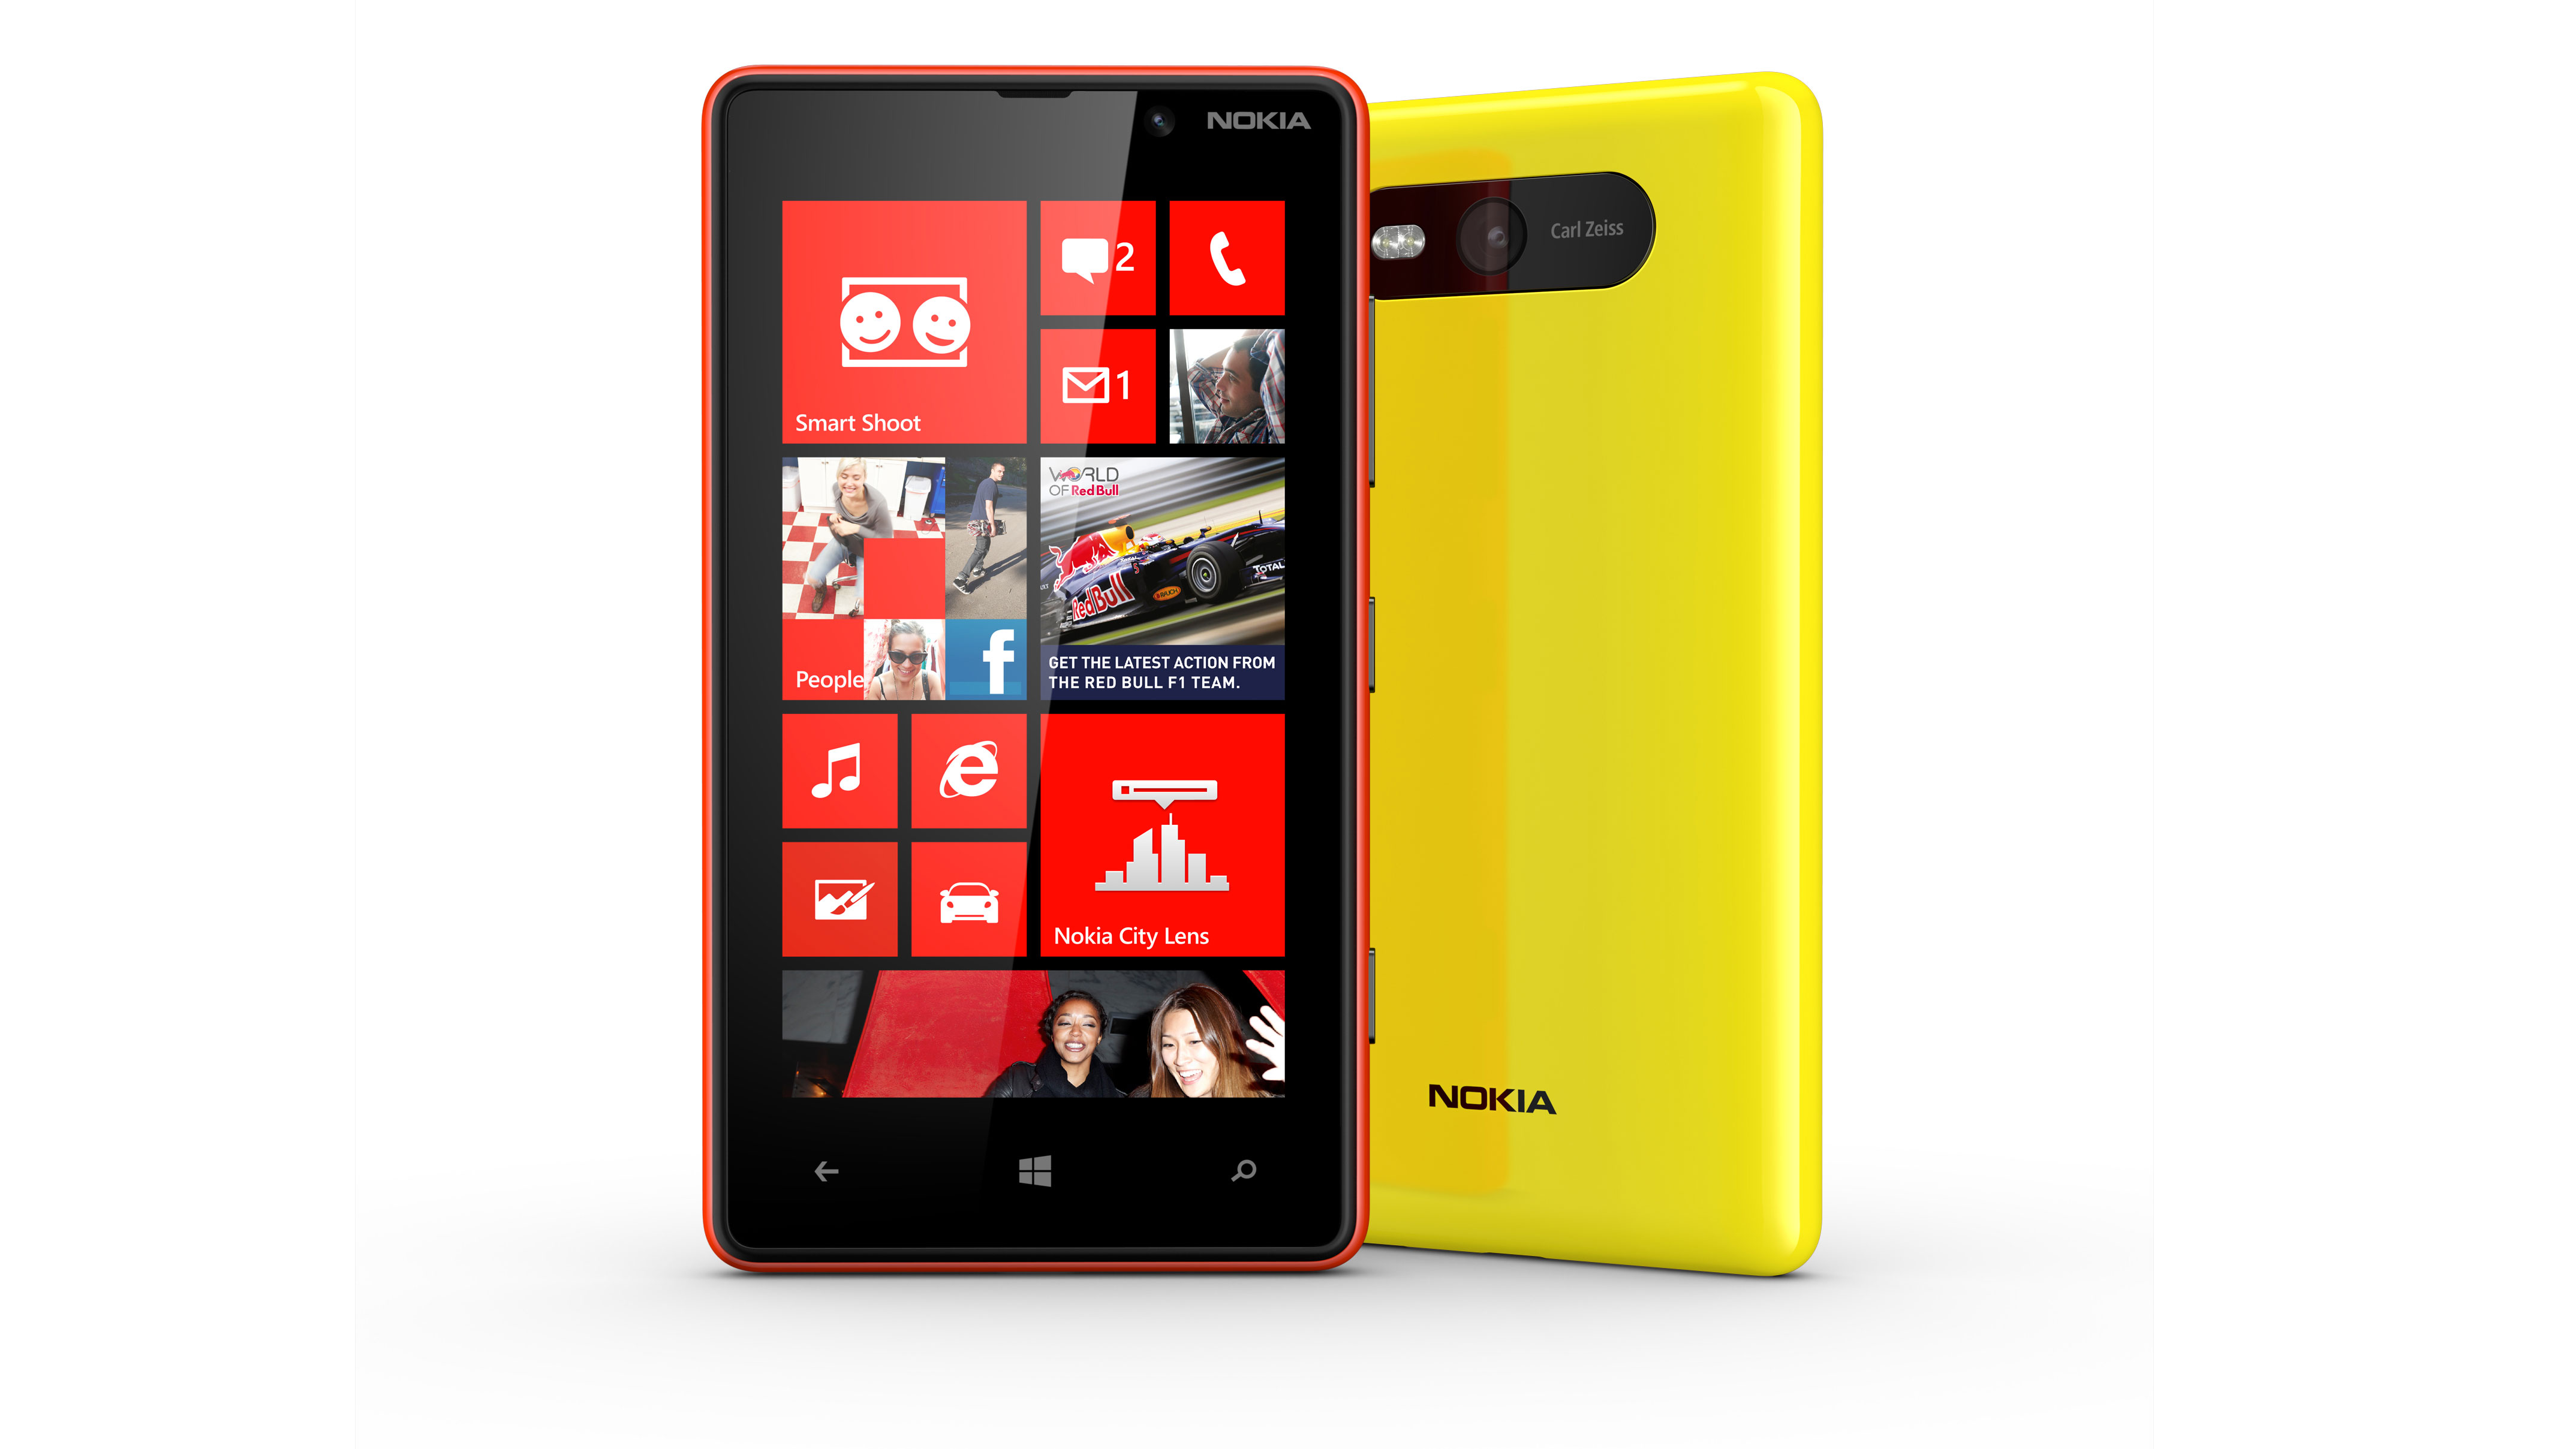 Nokia lumia 820: battery life, wireless charging and connectivity.